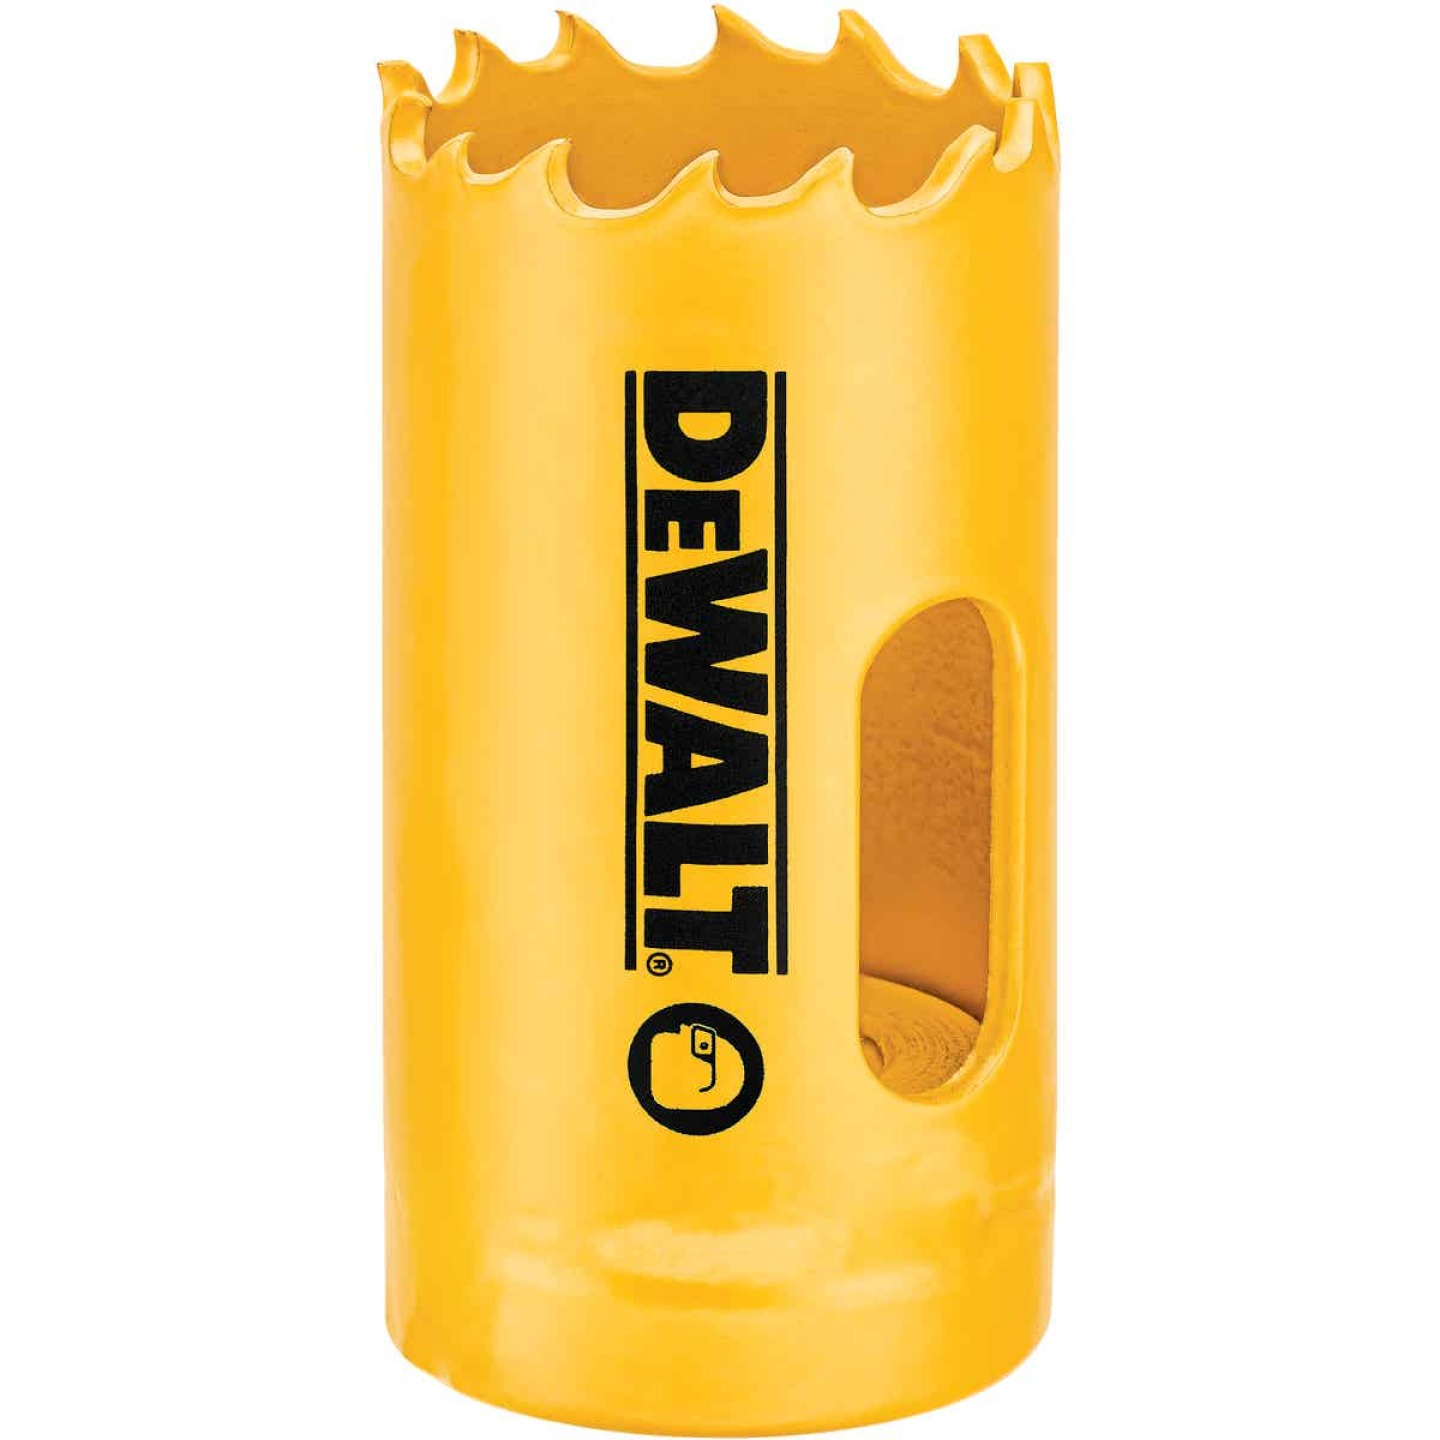 DeWalt 1-1/4 In. Bi-Metal Hole Saw Image 1